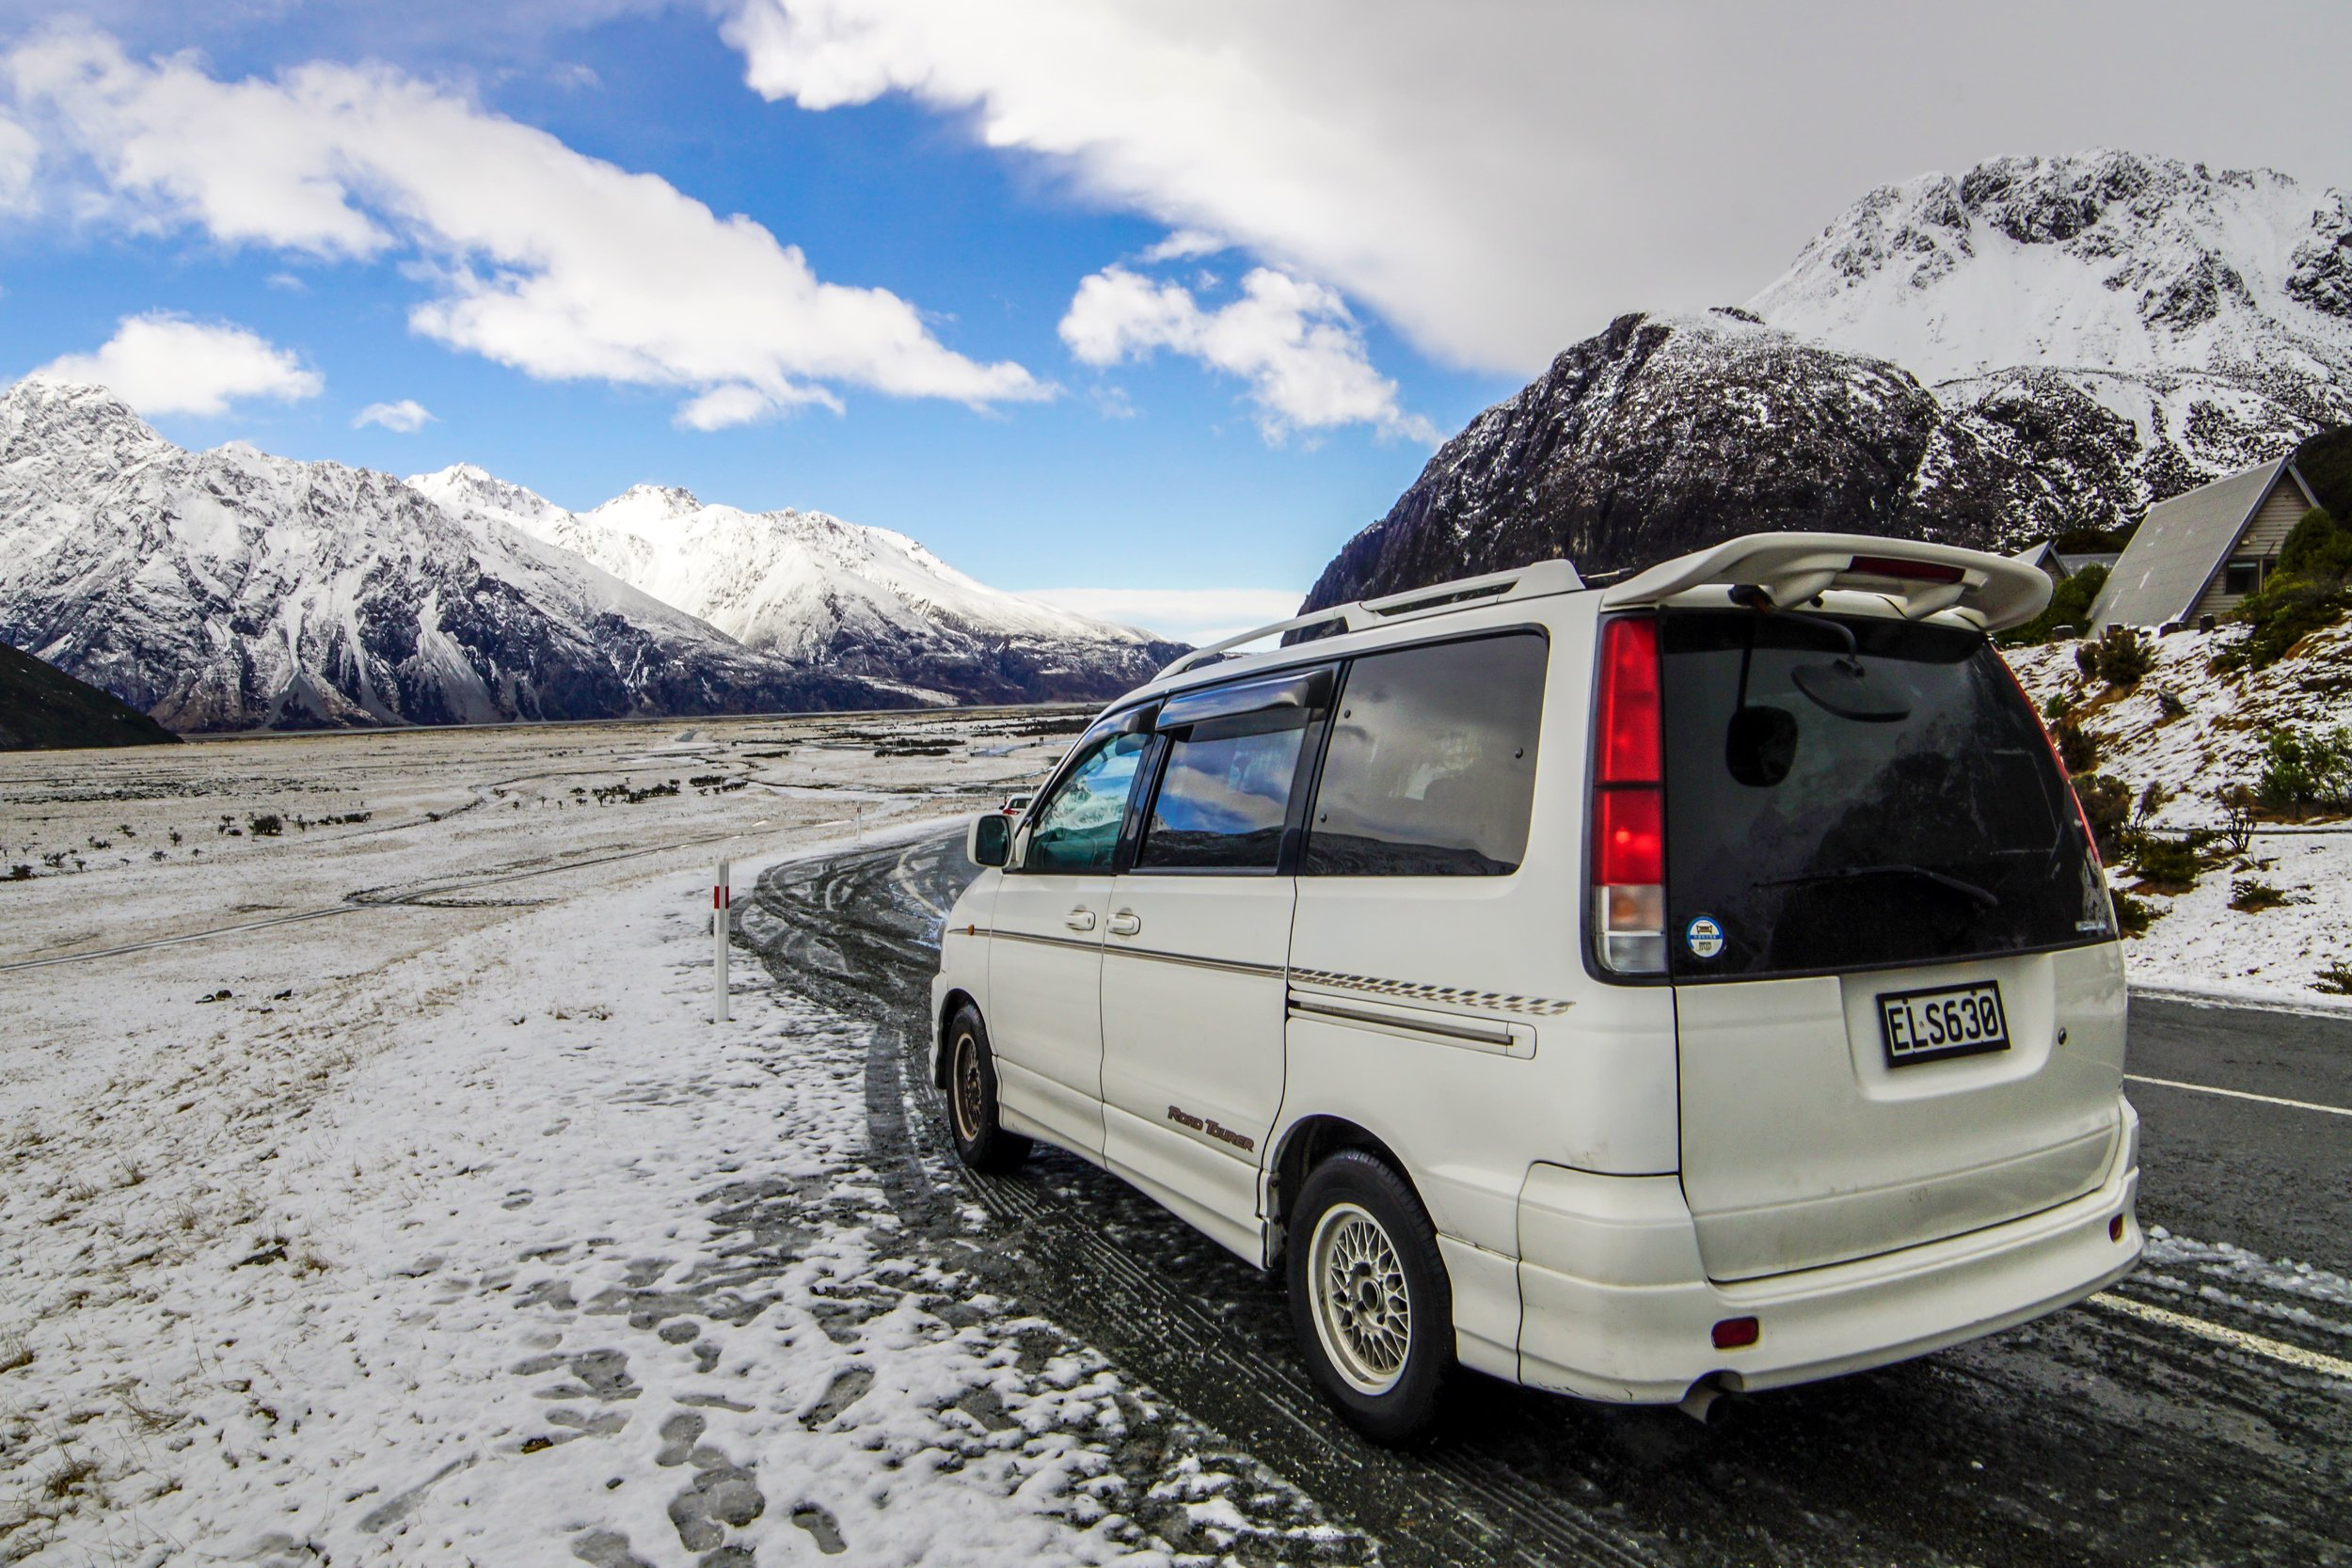 Noah on a snowy road in Mount Cook National Park